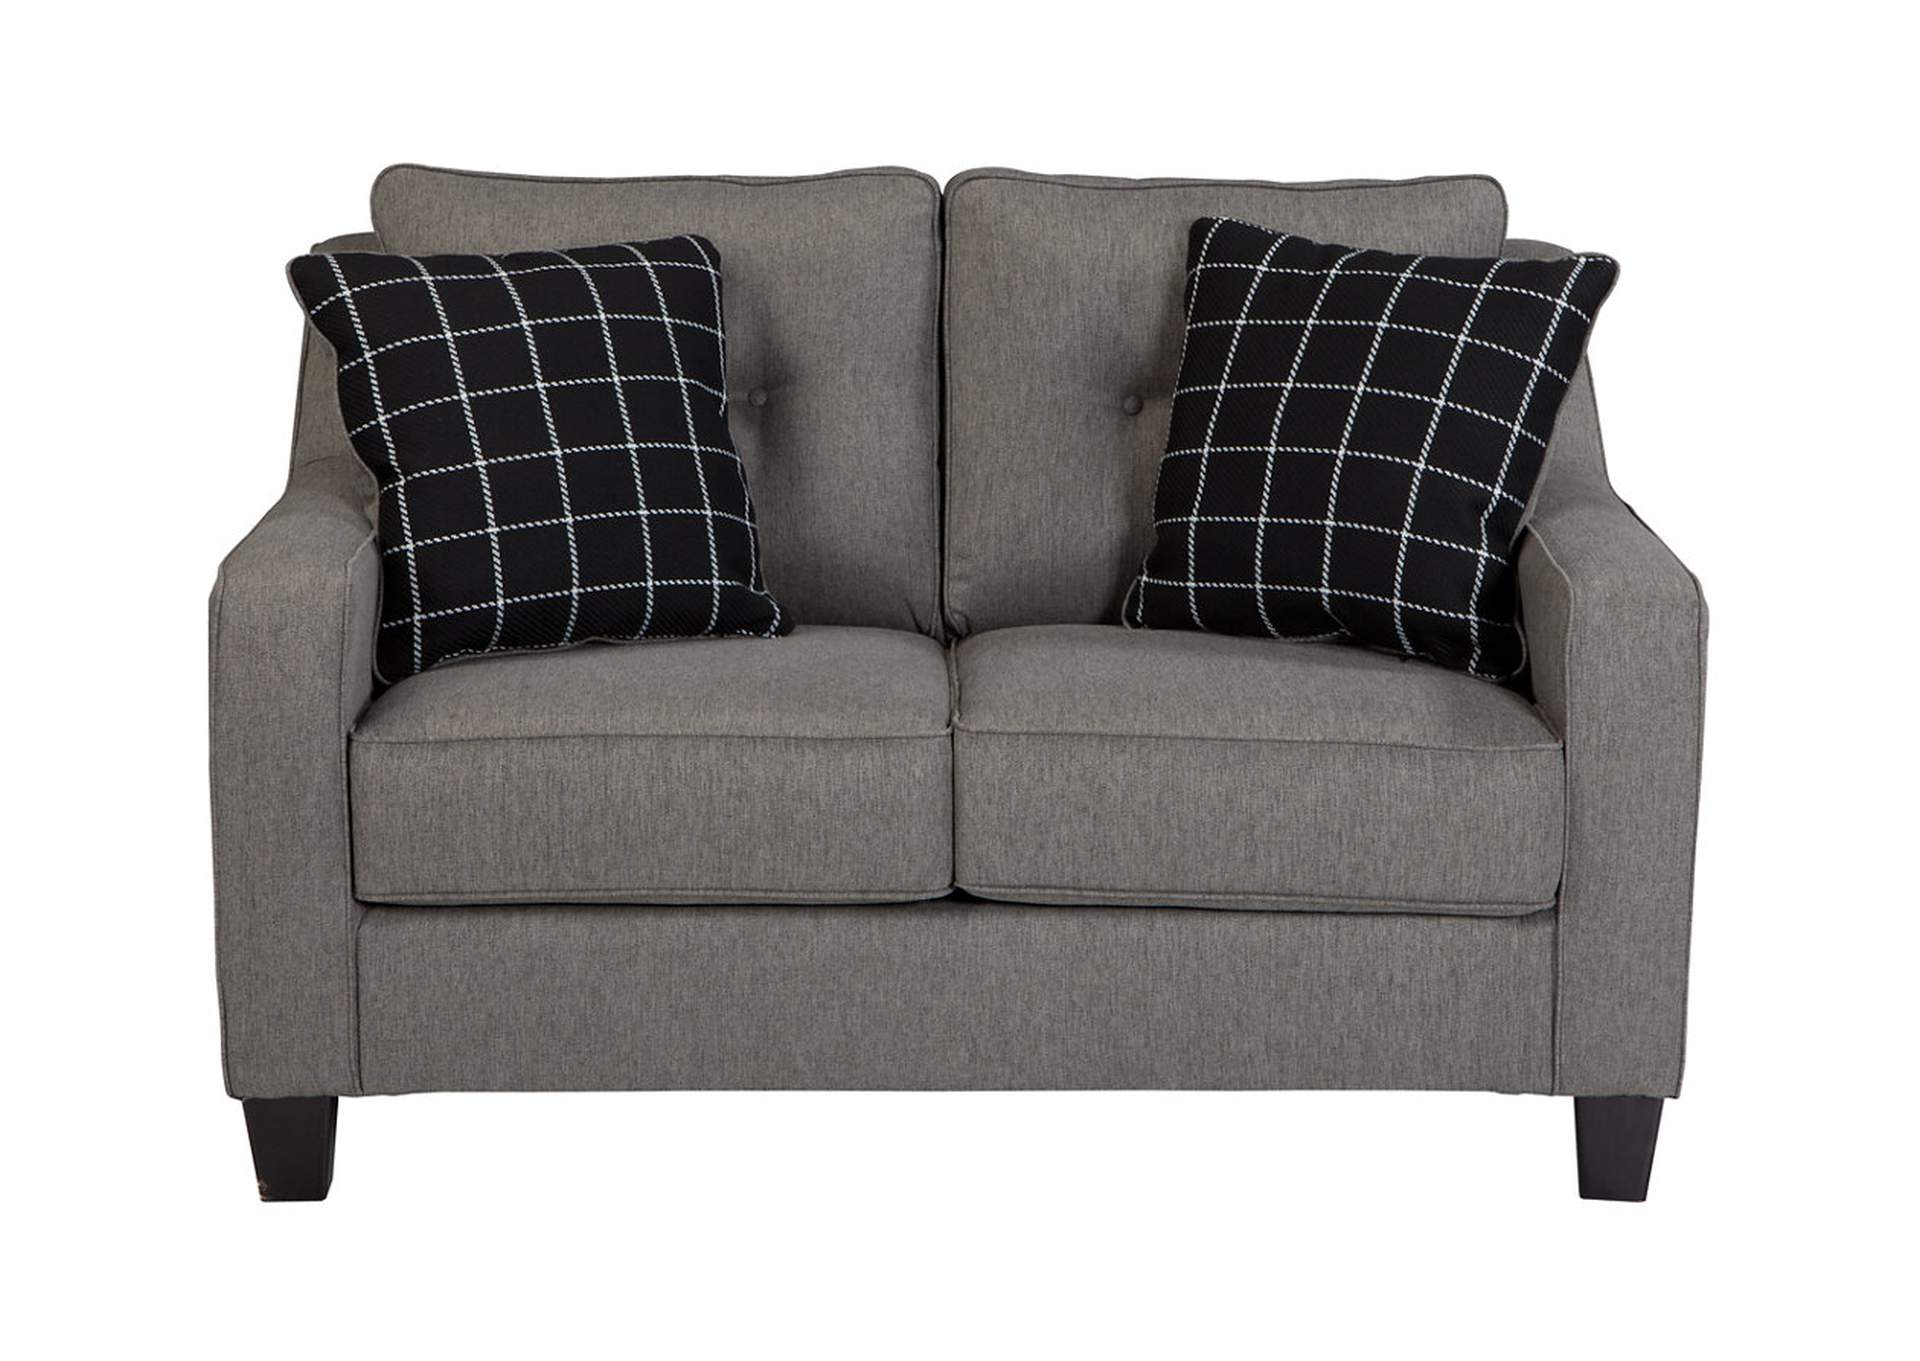 Furniture Factory Warehouse Barrington Nj Brindon Charcoal Loveseat